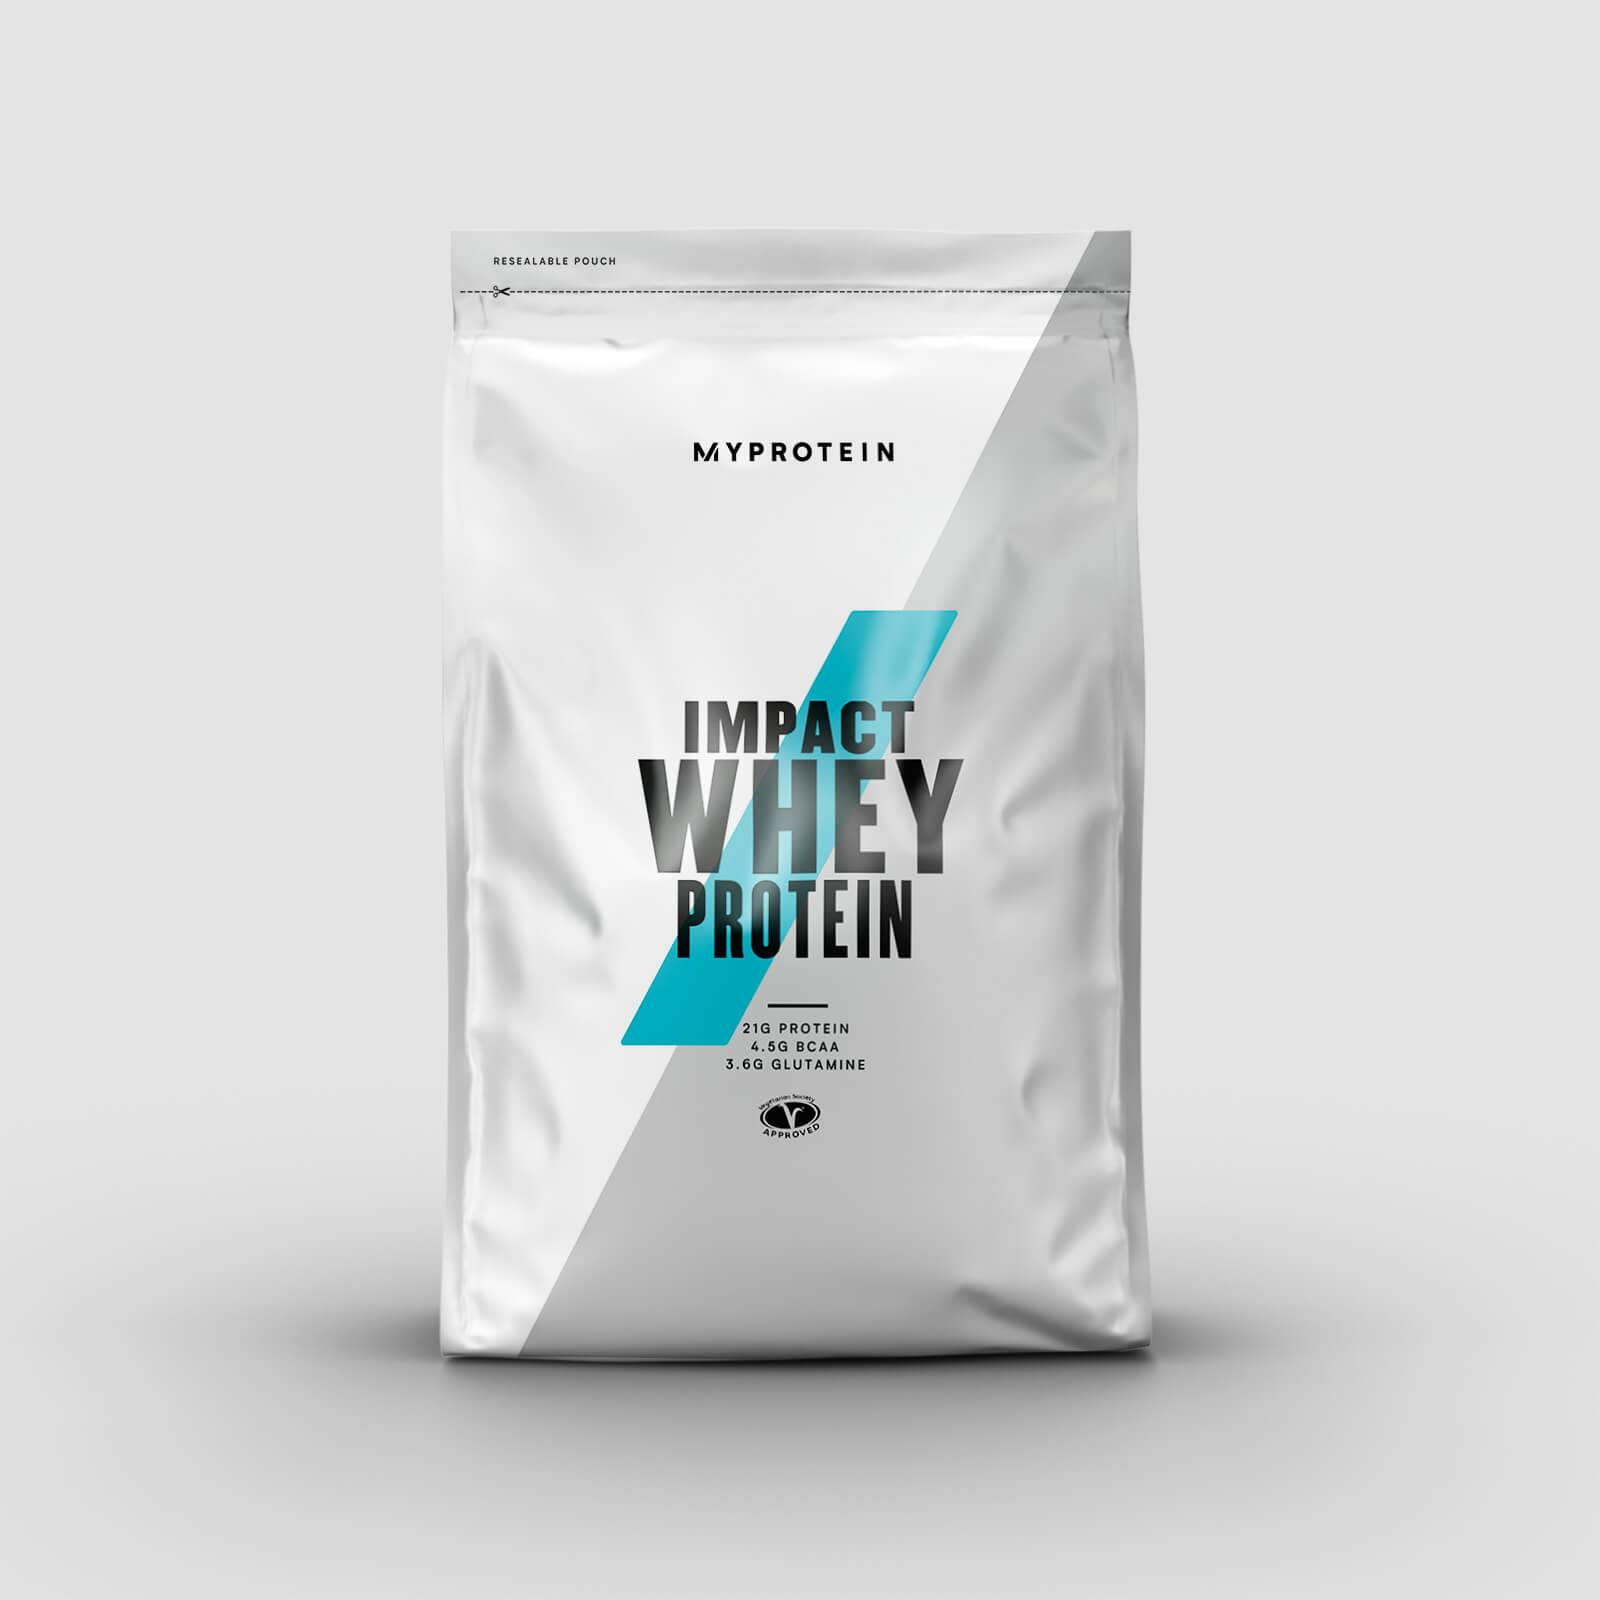 Myprotein Impact Whey Protein, 1kg - Natural Strawberry